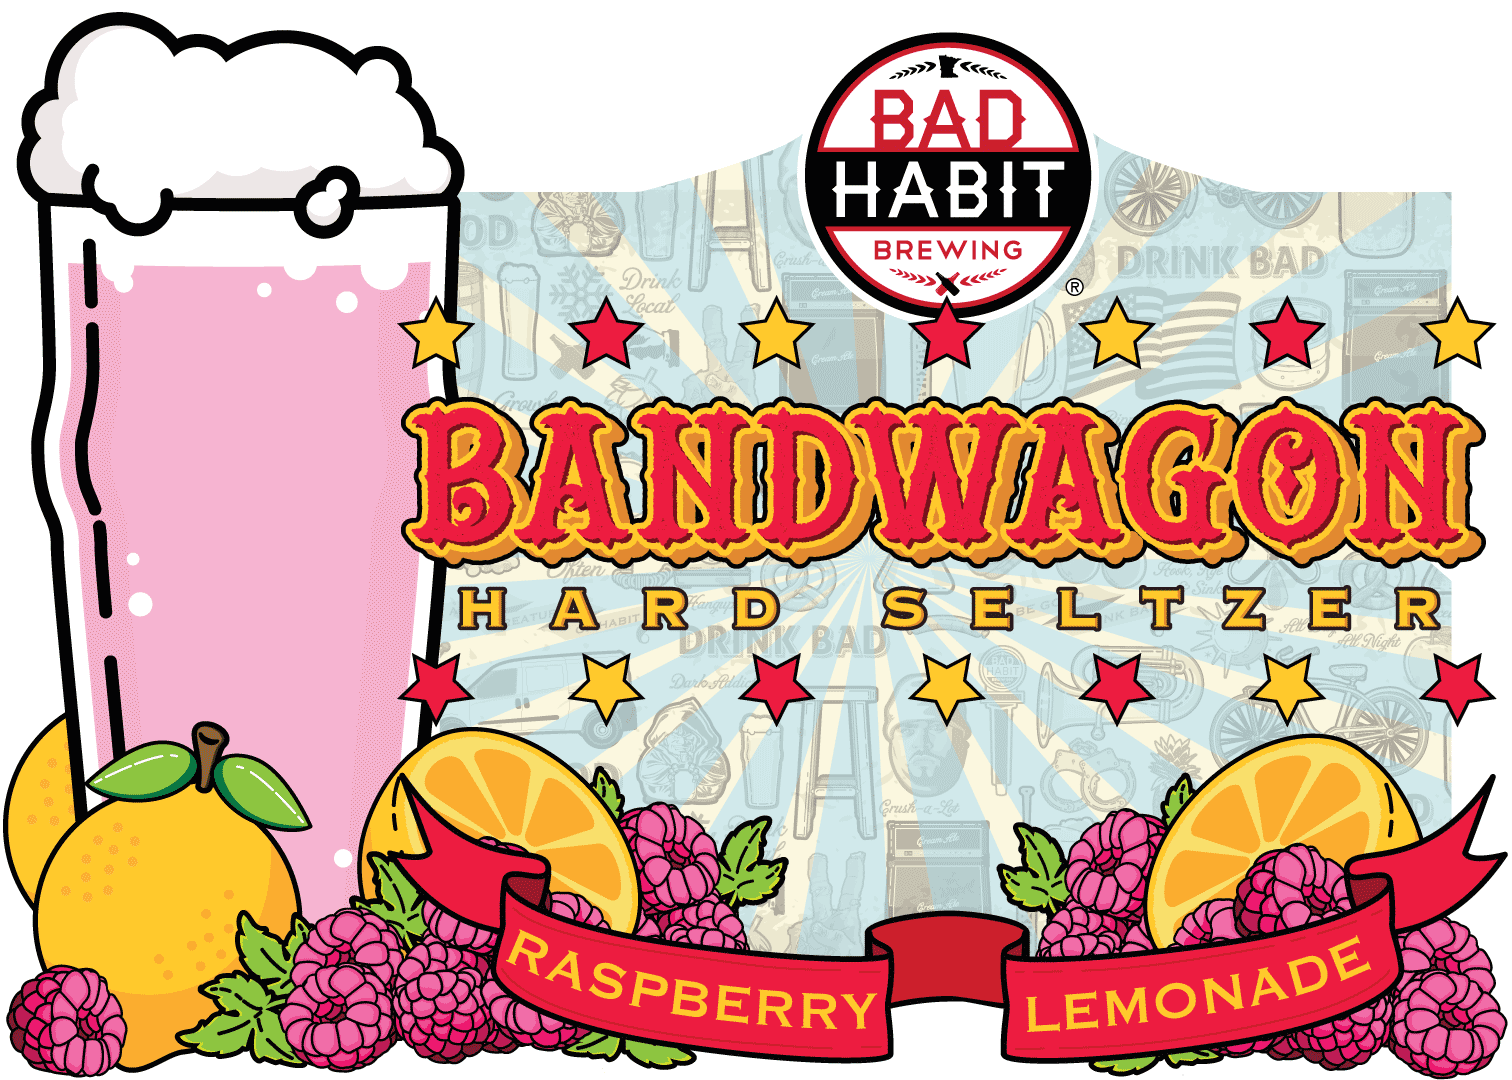 BANDWAGON - Raspberry Lemonade Sparkling Hard Seltzer | 4% ABVDeliciously refreshing, gluten reduced, sparkling hard seltzer water, infused with raspberry. It's becoming a circus around here. Get on the bandwagon, we did.TAPPING FRIDAY, JULY 19